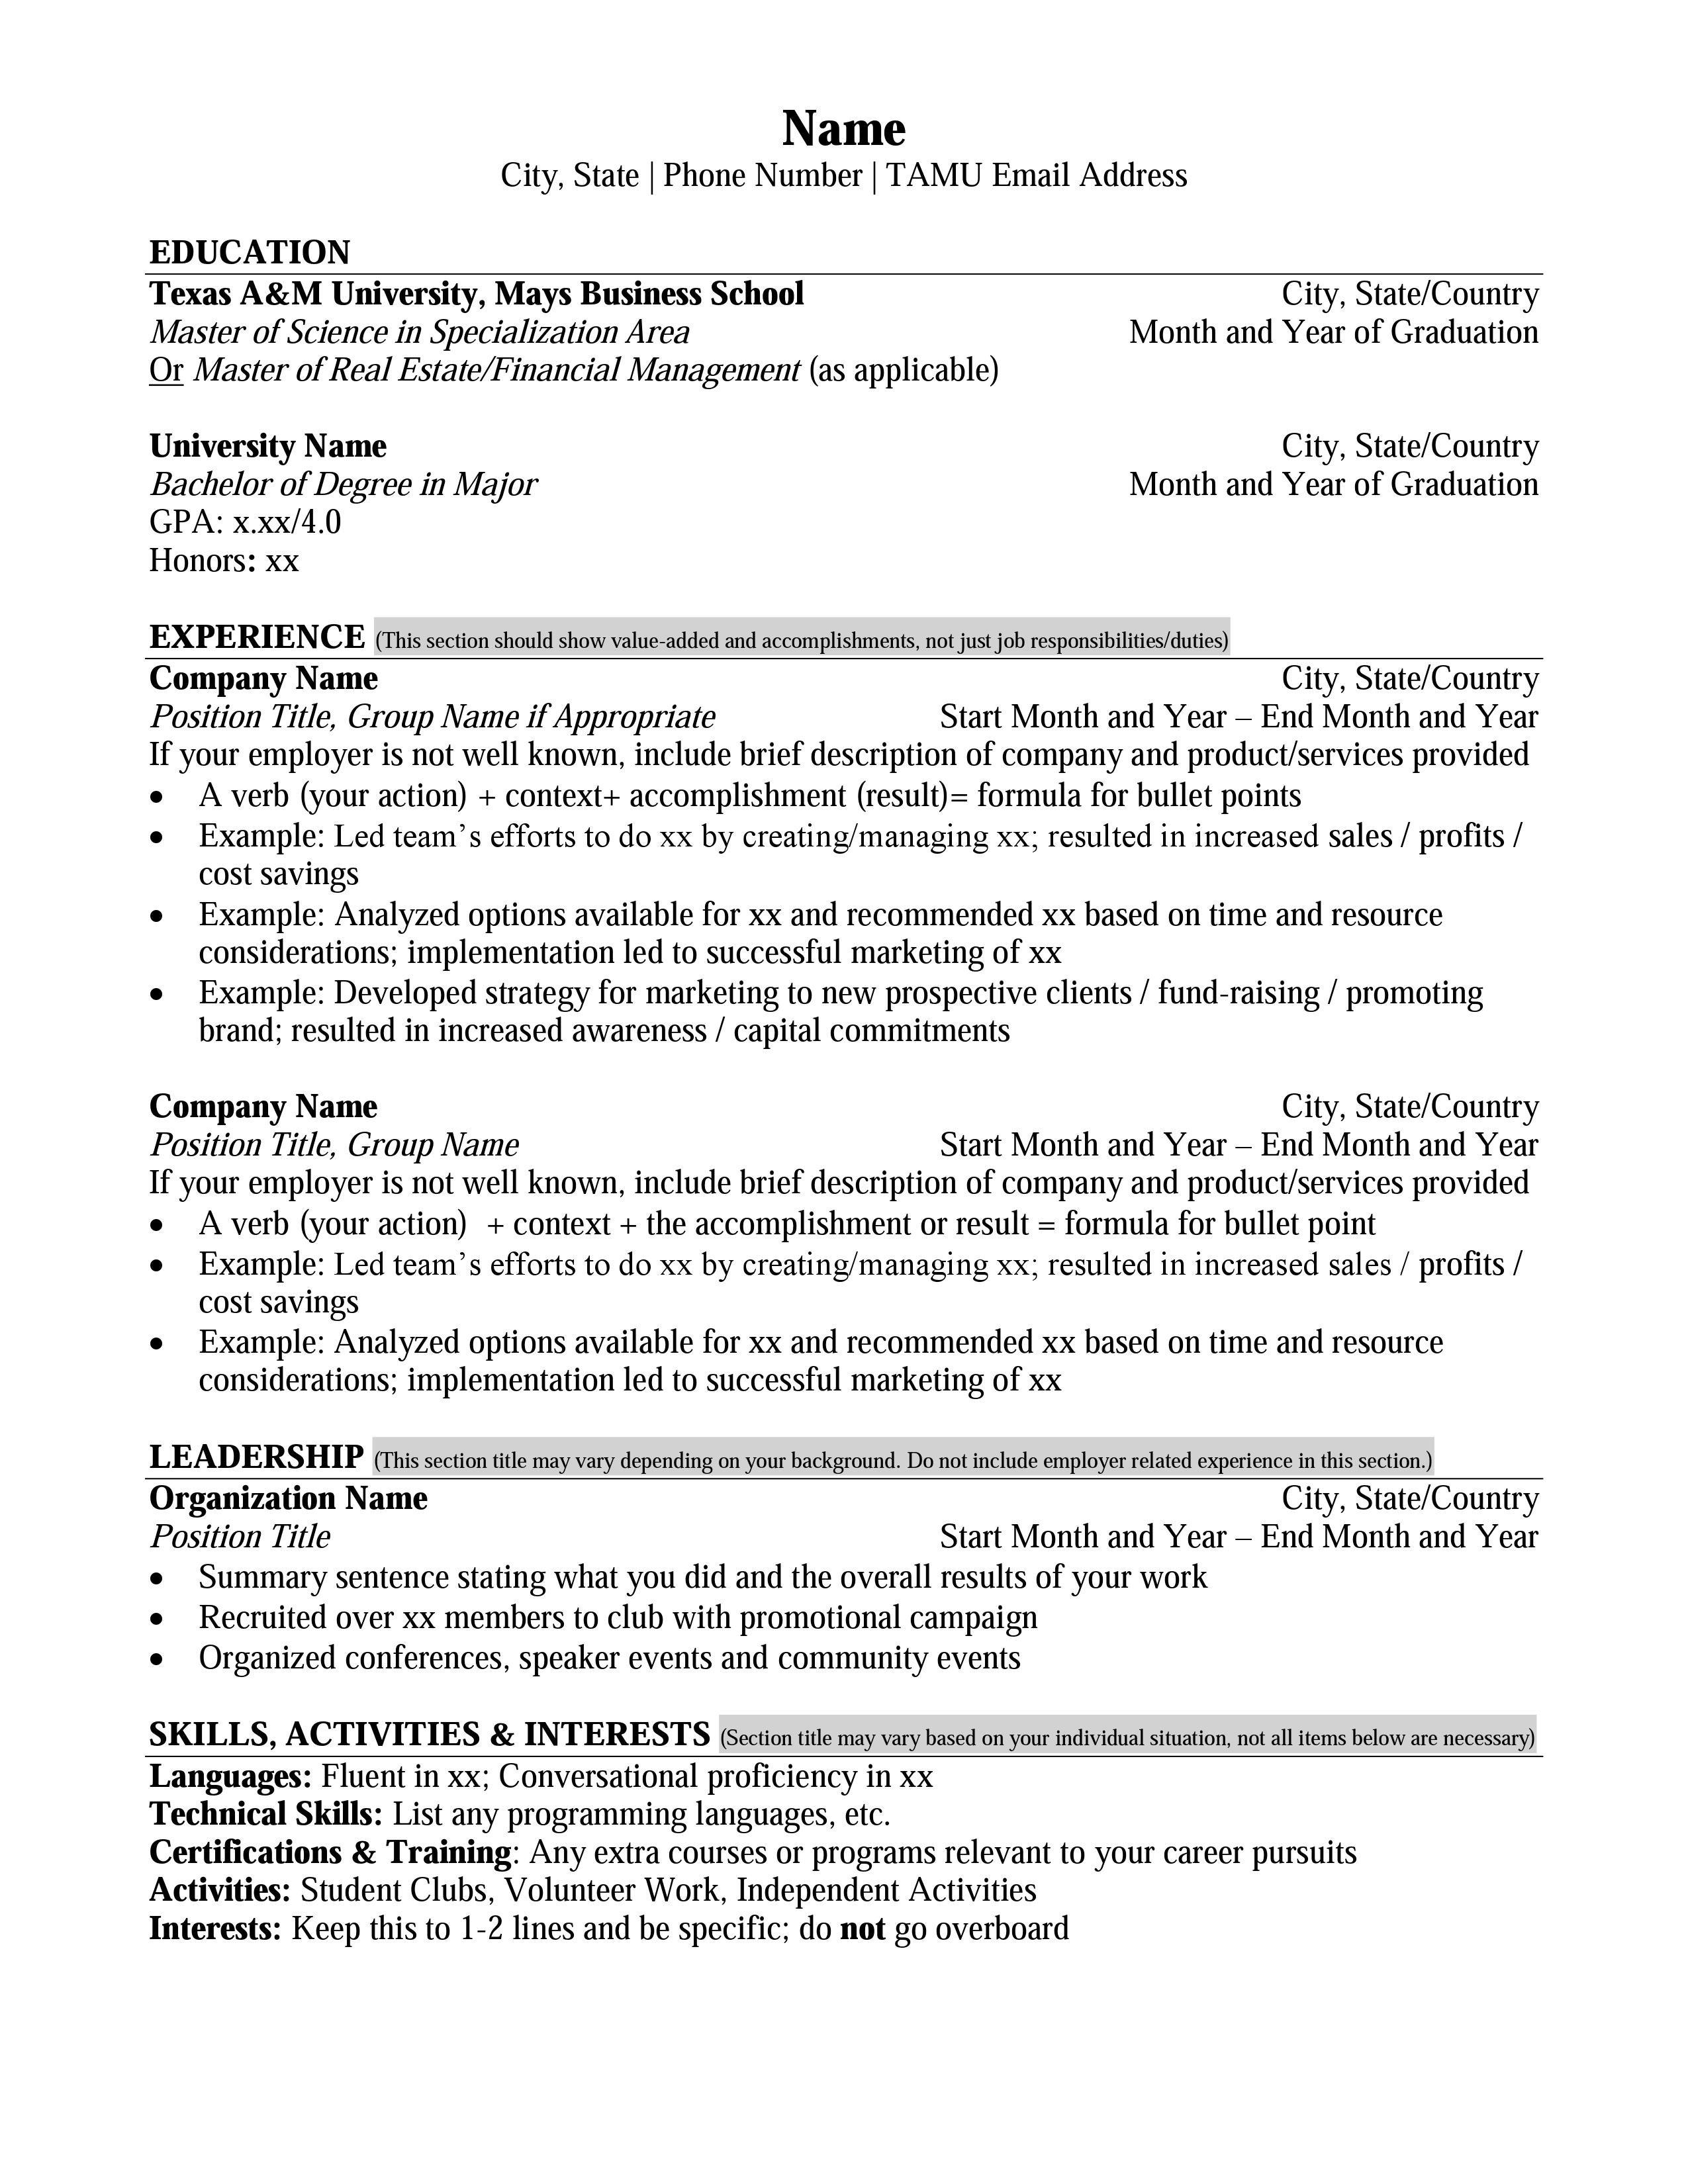 paralegal to data analytics resume examples